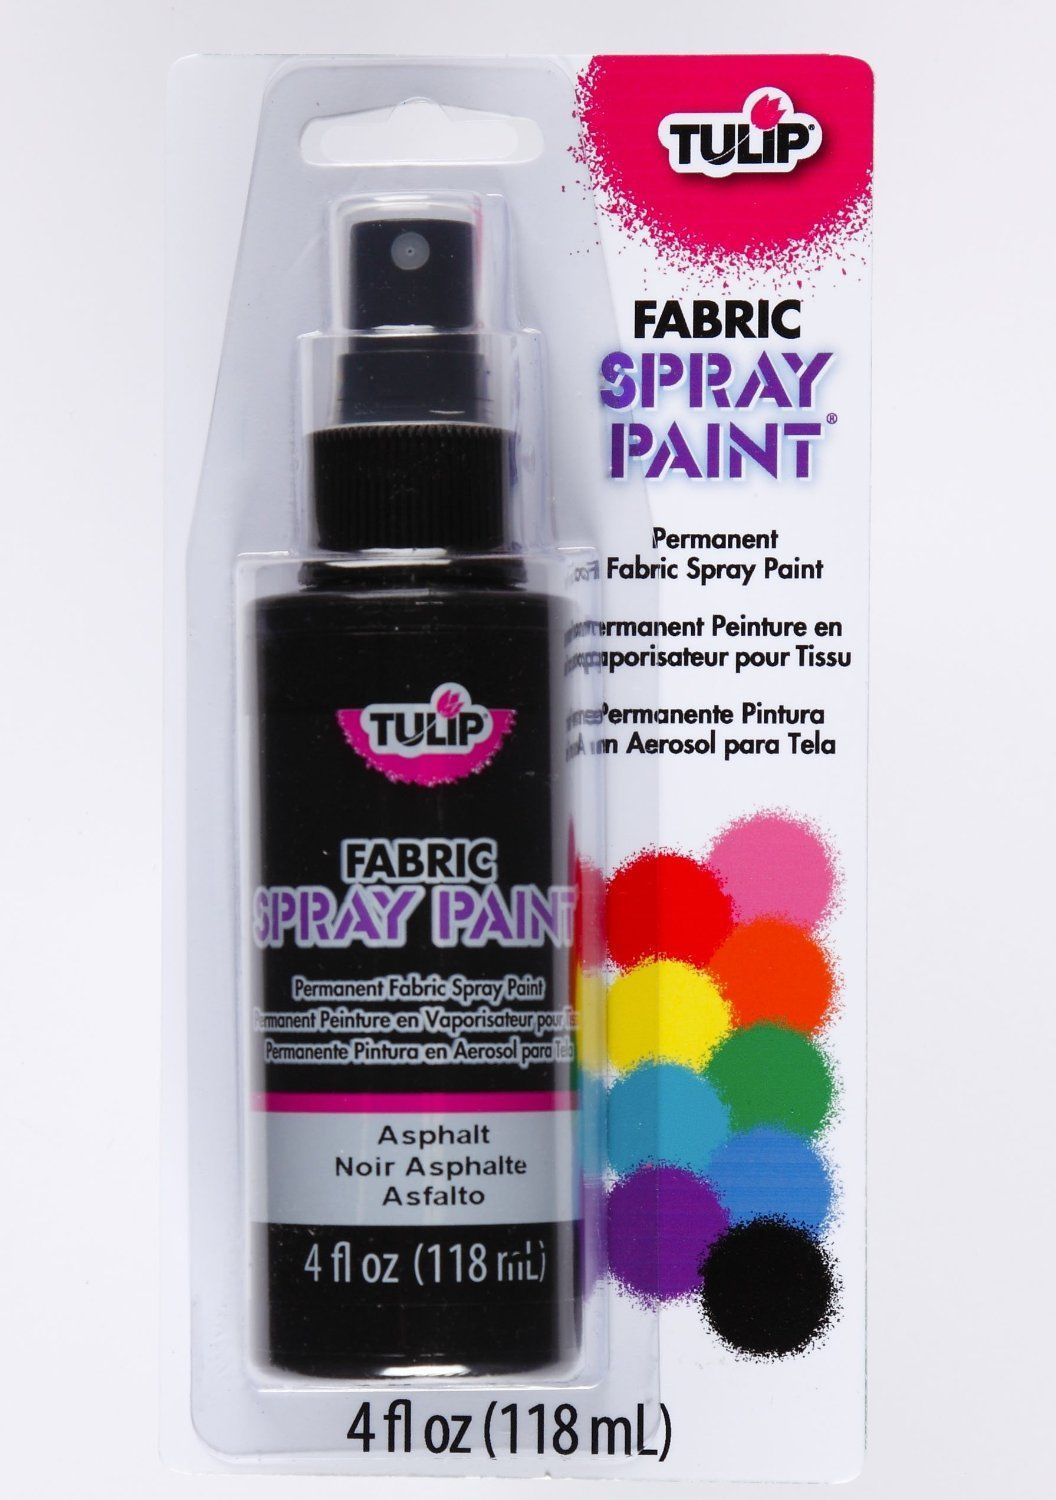 Shirt design and colour - Black Fabric Textile Spray Paint Tulip Upholstery Material T Shirt Design Craft